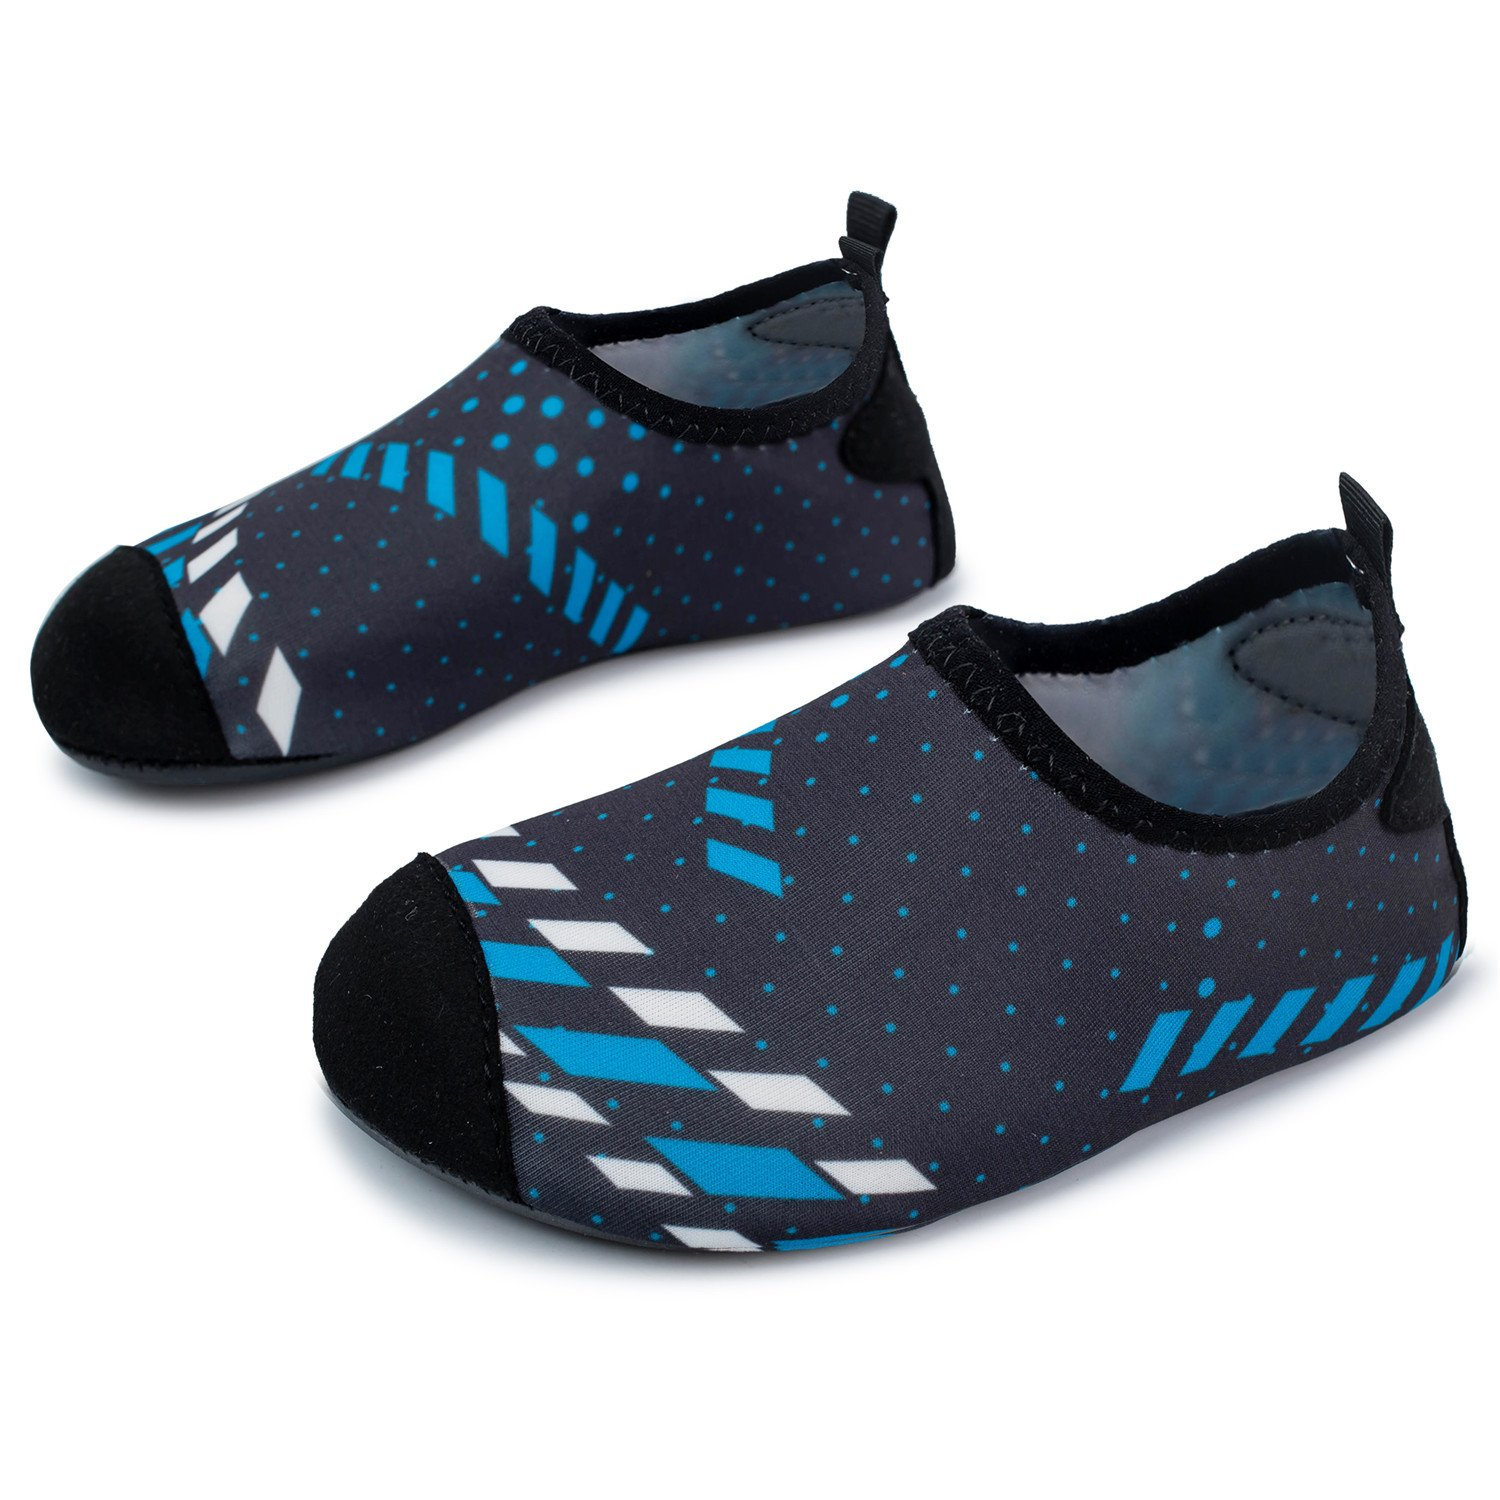 L-RUN Toddler Water Shoes Outdoor Boy's Swims Aqua Shoes Black Blue US 3-4=EU 18-19